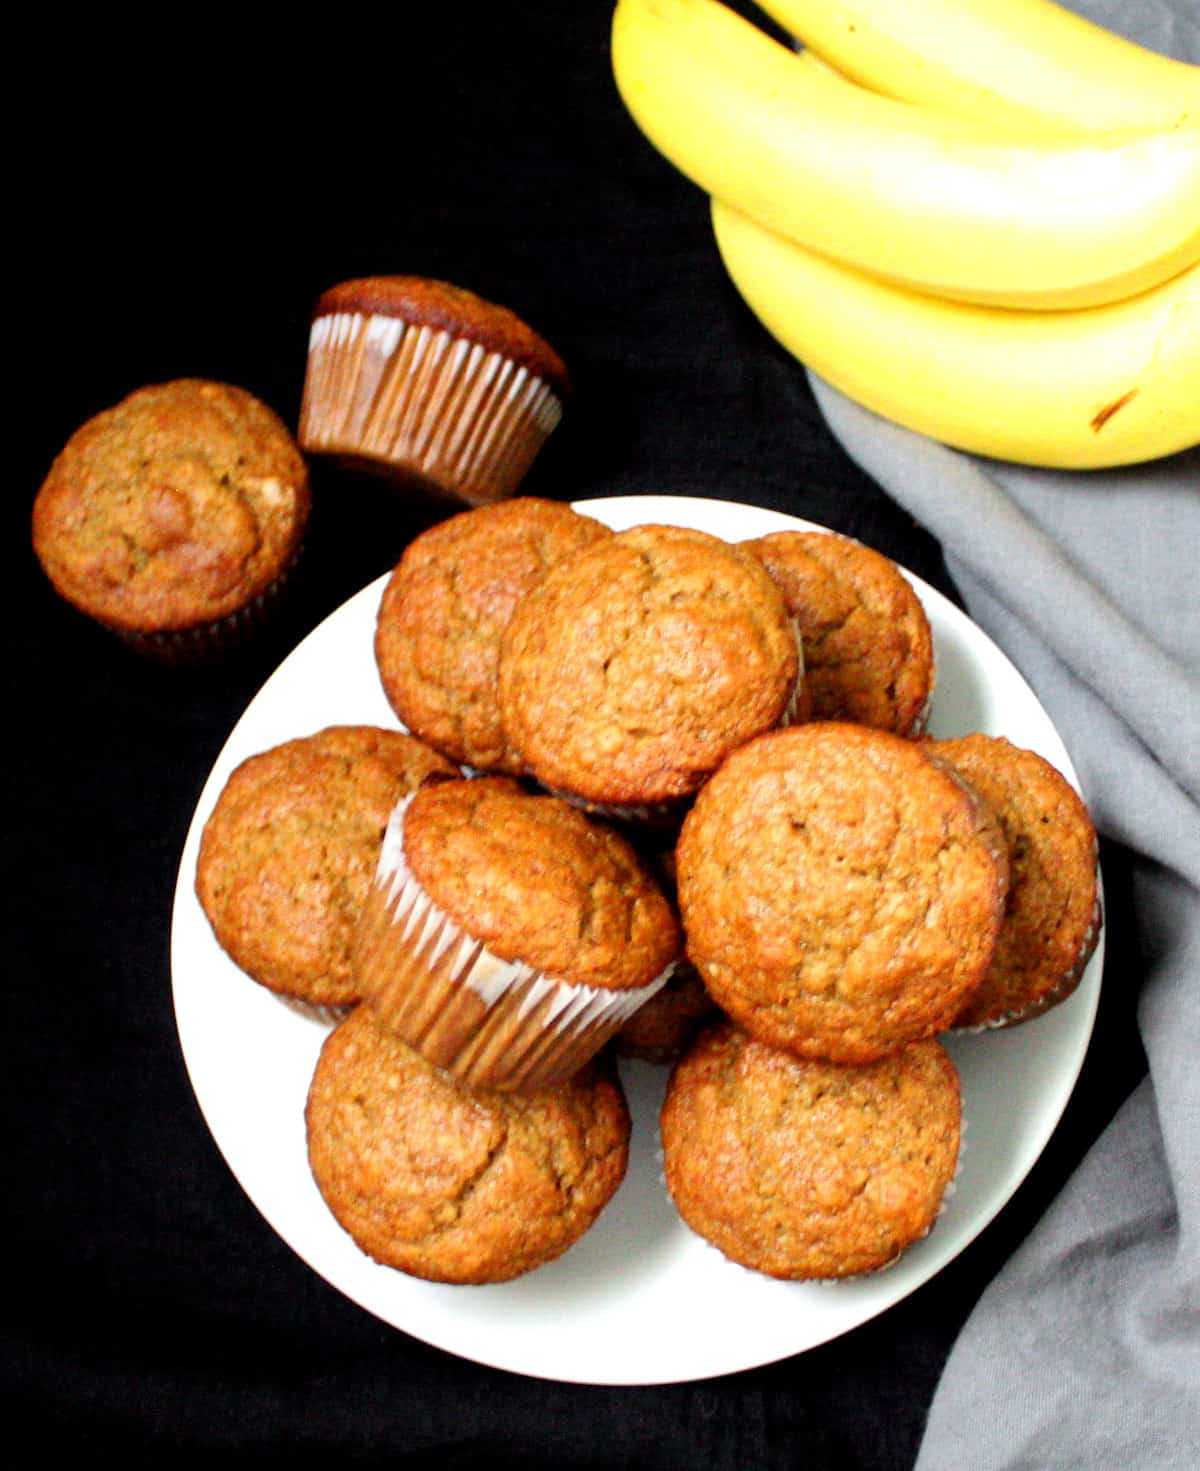 An overhead shot of vegan banana muffins in a white plate with two outside and bananas and a gray napkin.